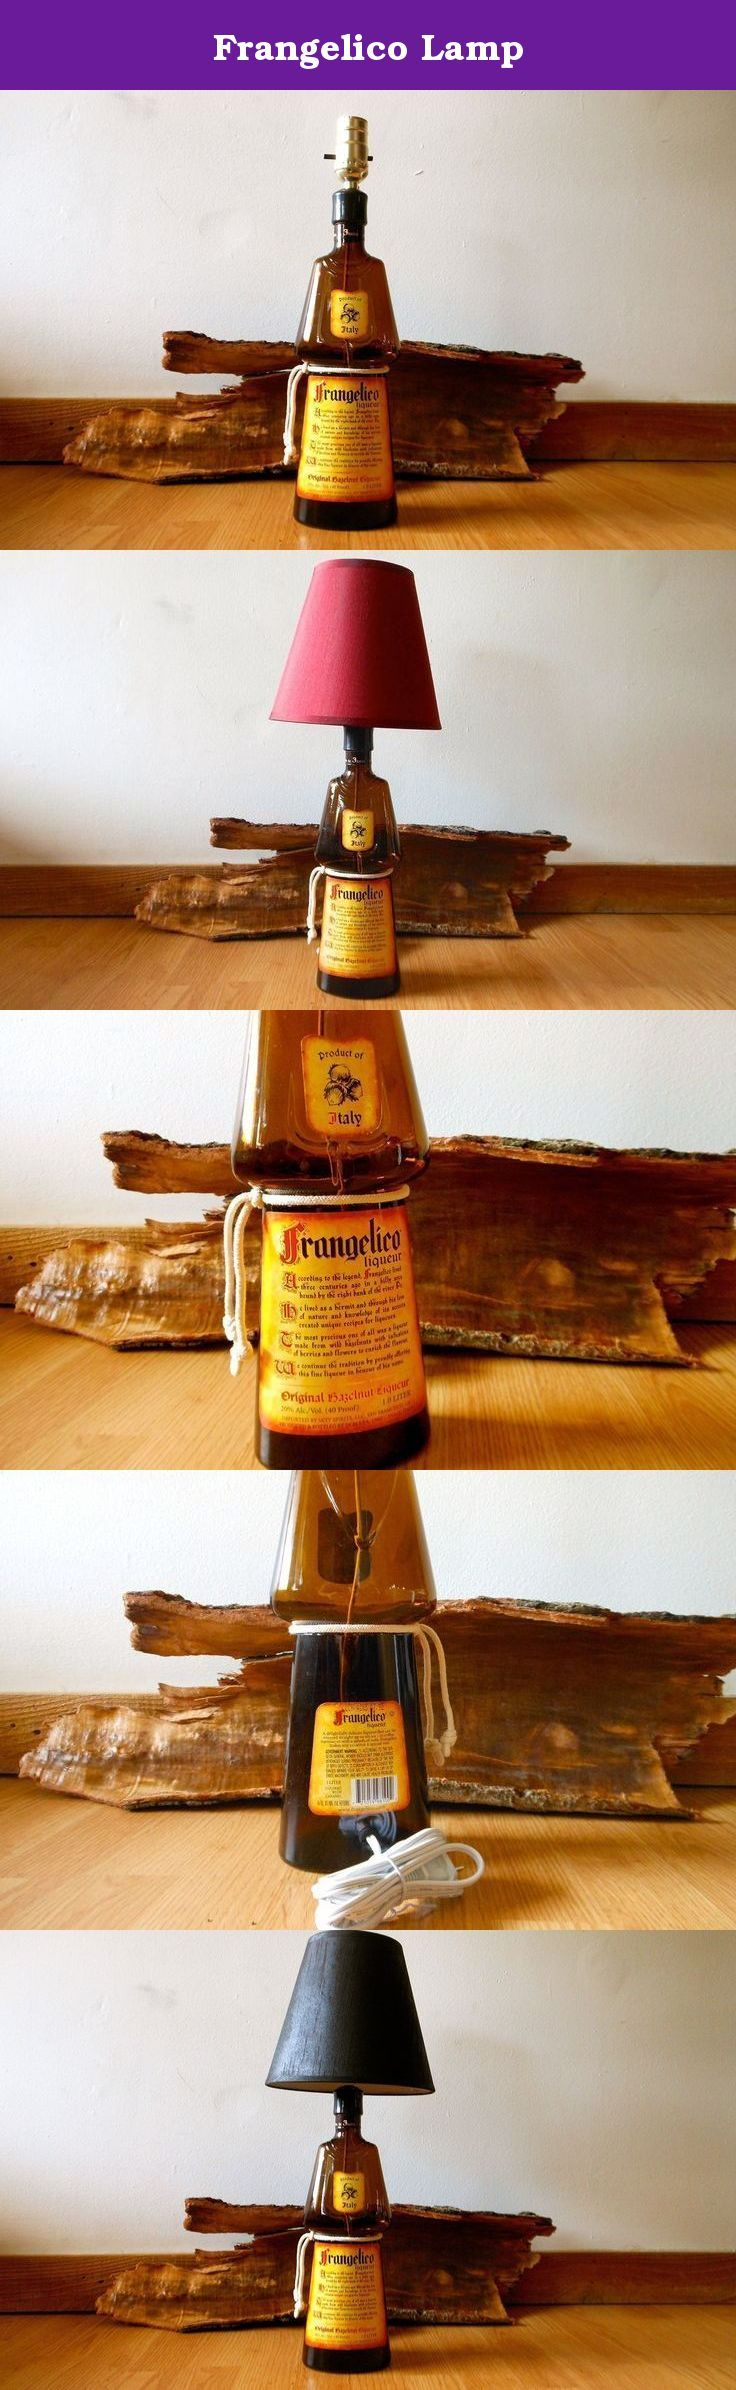 Frangelico Lamp. This lamp will make the perfect gift for the person who has everything. It has great character and starts conversions. The Frangelico lamp is made from a 1L glass liquor bottle. A white cord with a rubber grommet is stringed through the back bottom of the bottom. Black, brown or red lamp shade included.